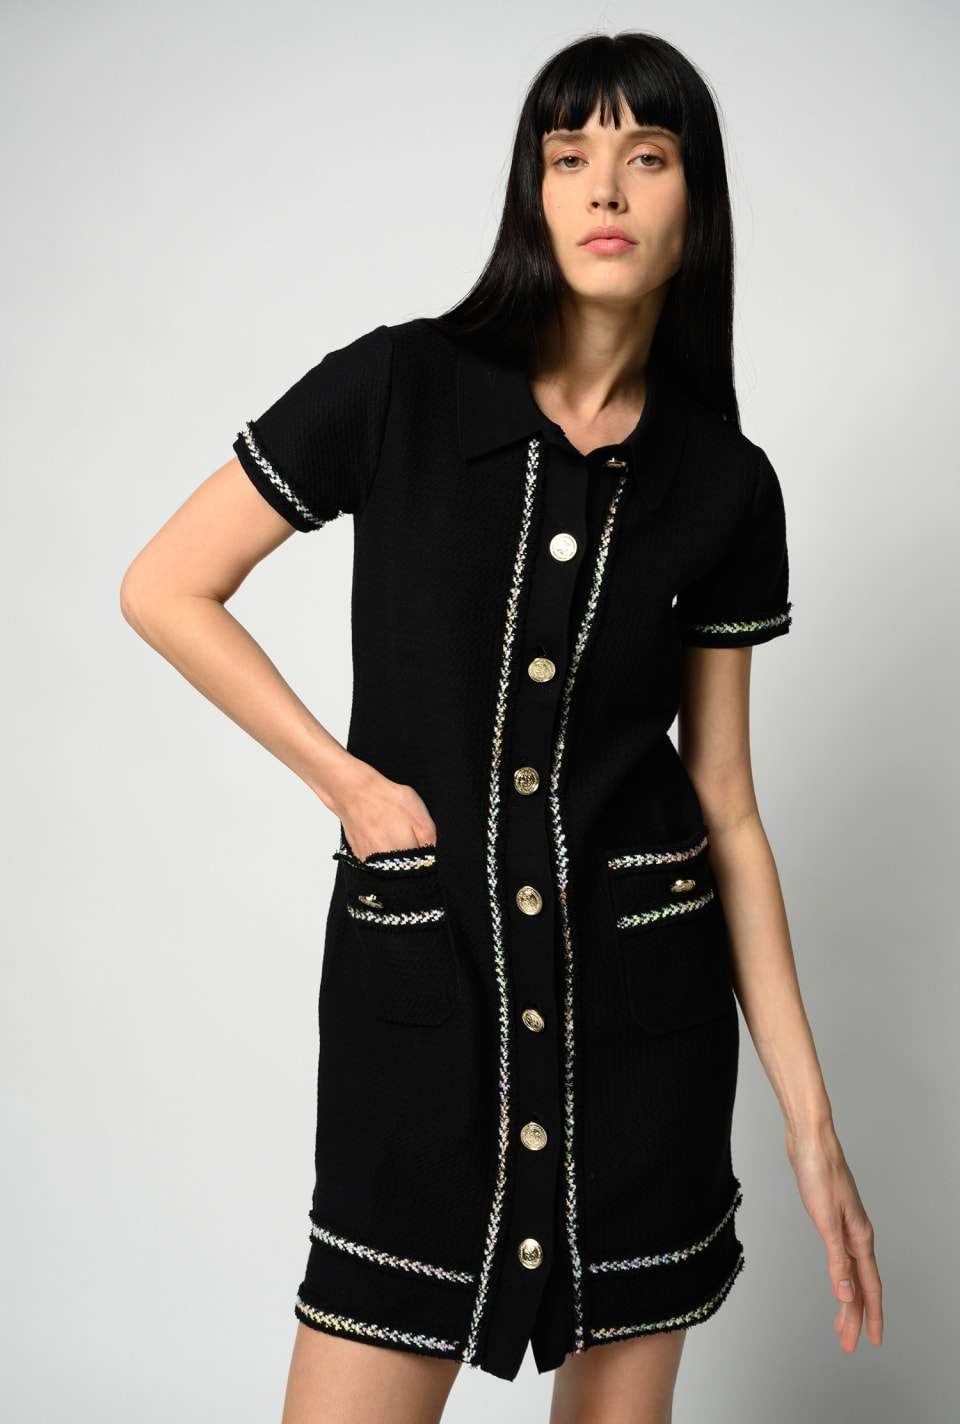 Polo dress with metal buttons - Pinko